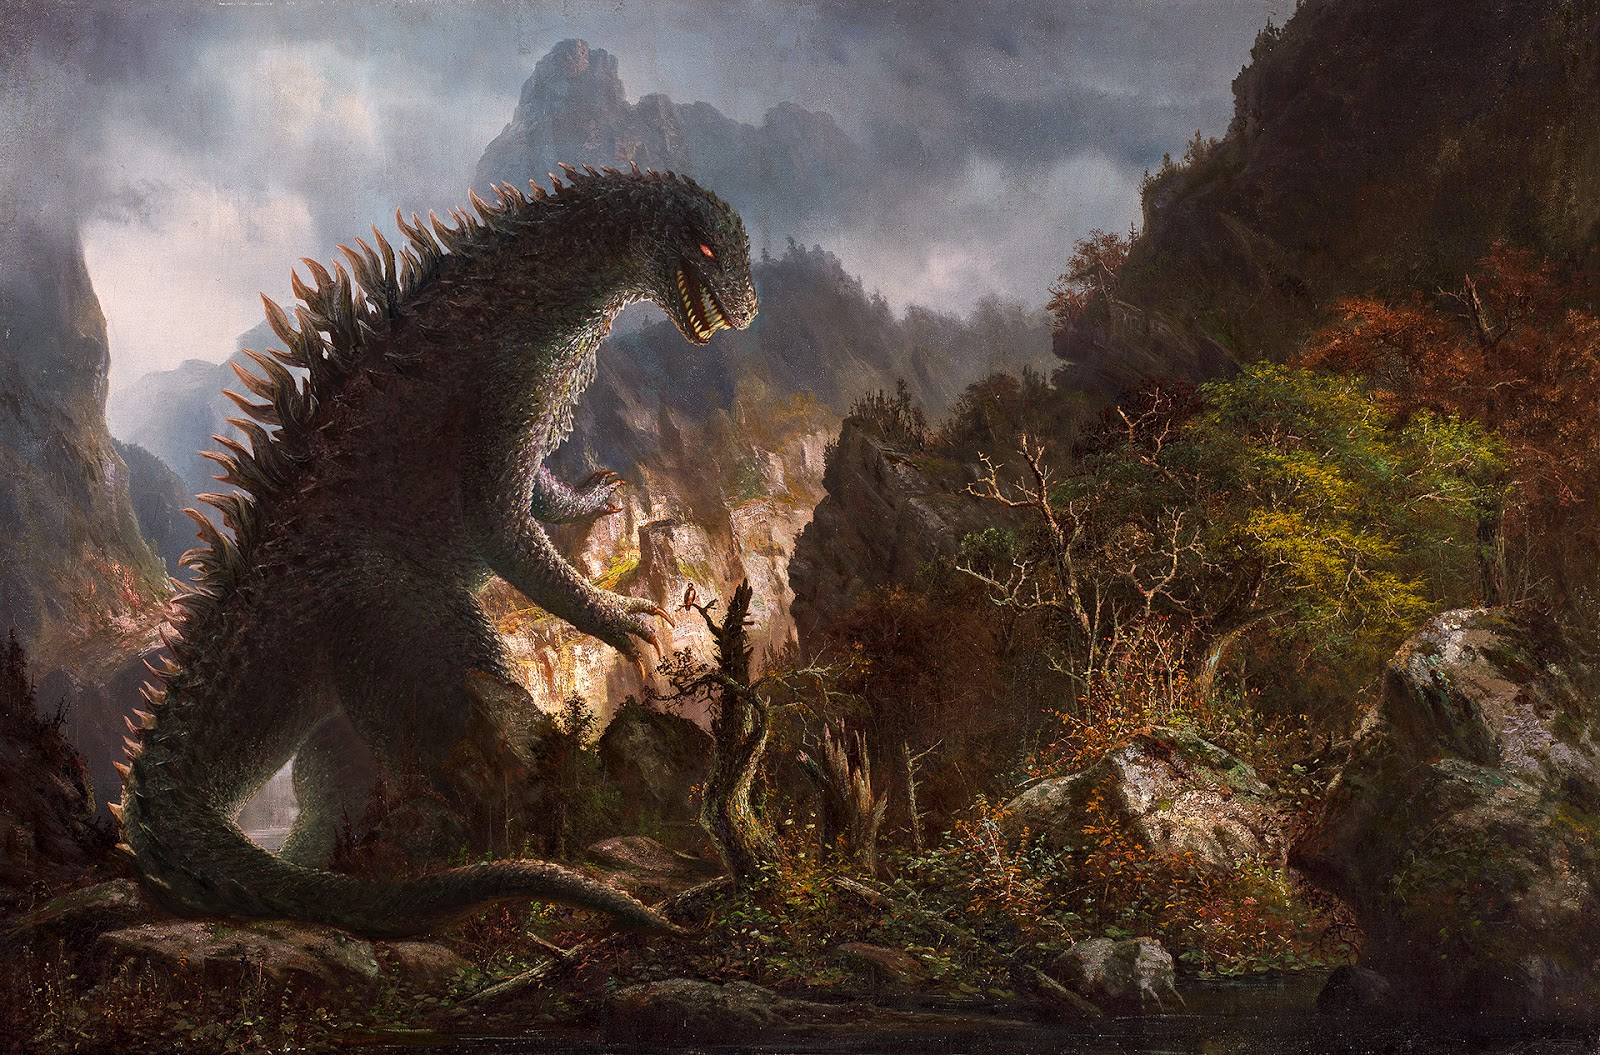 Digital overpainting of Godzilla in the mountain by Hermann Herzog